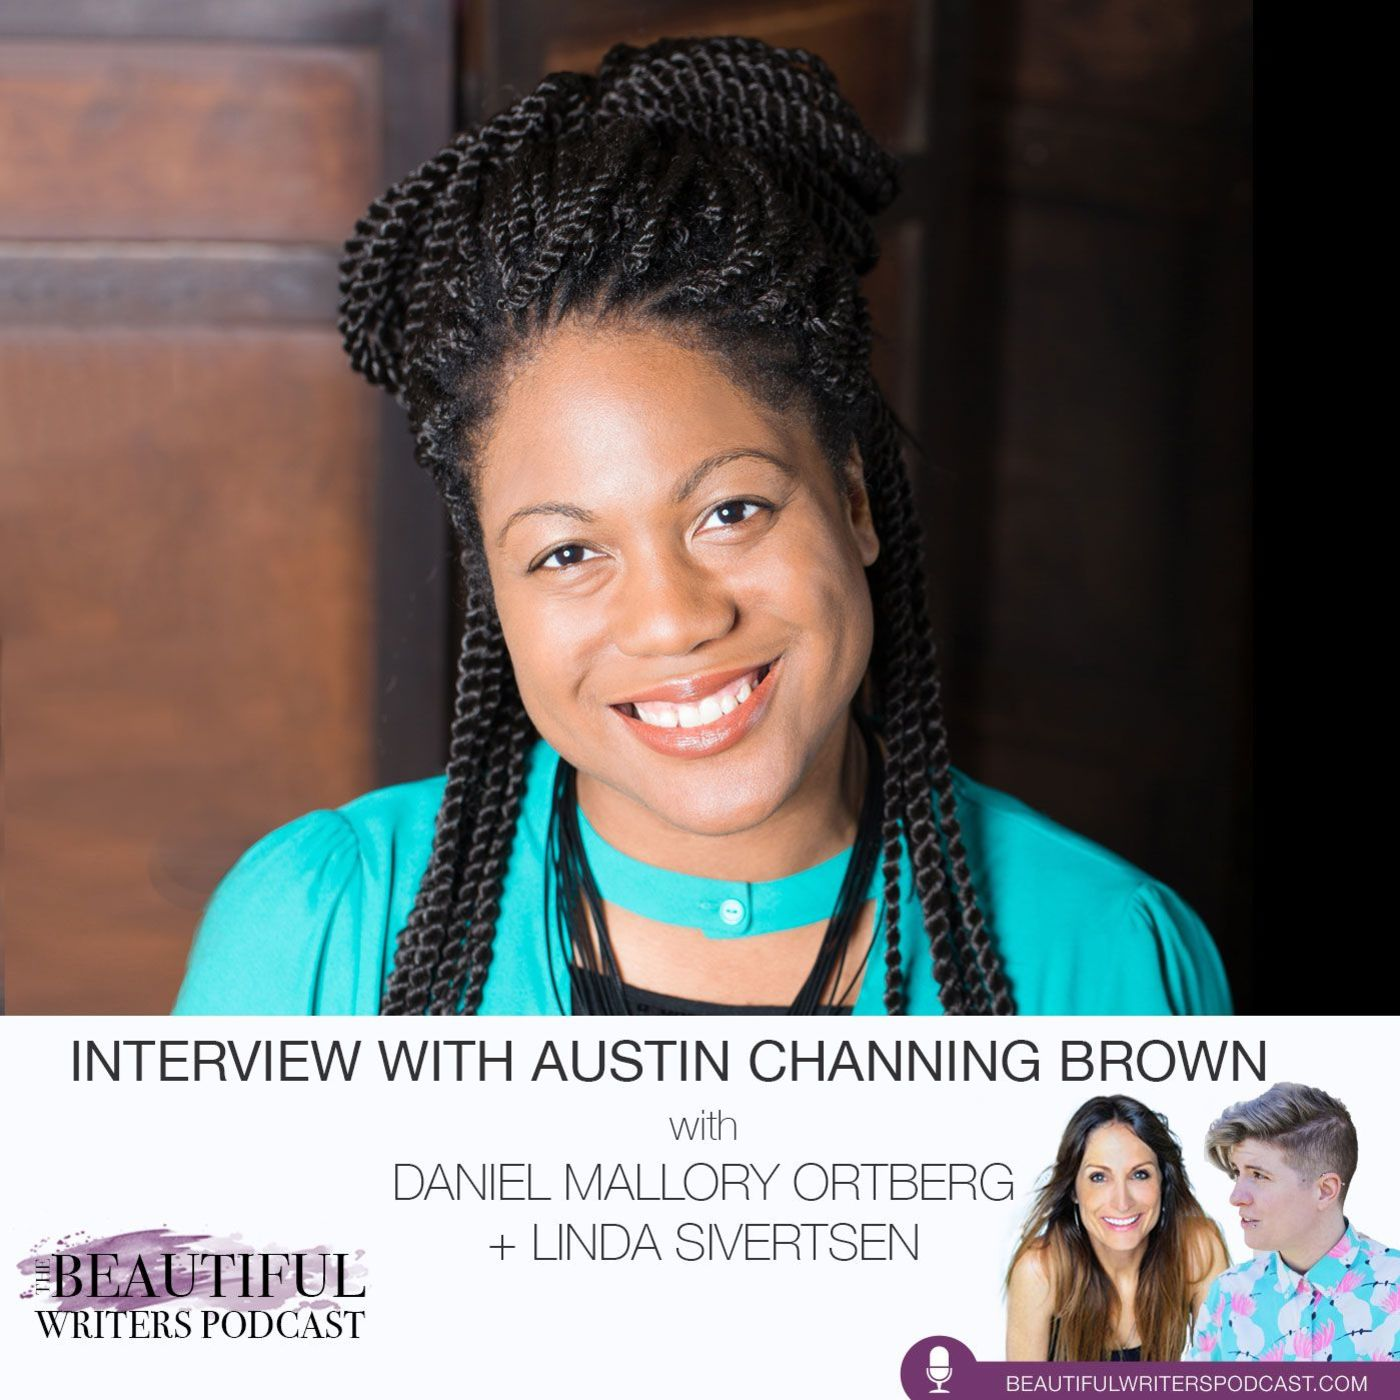 Austin Channing Brown: Racial Justice & the Power of the Pen